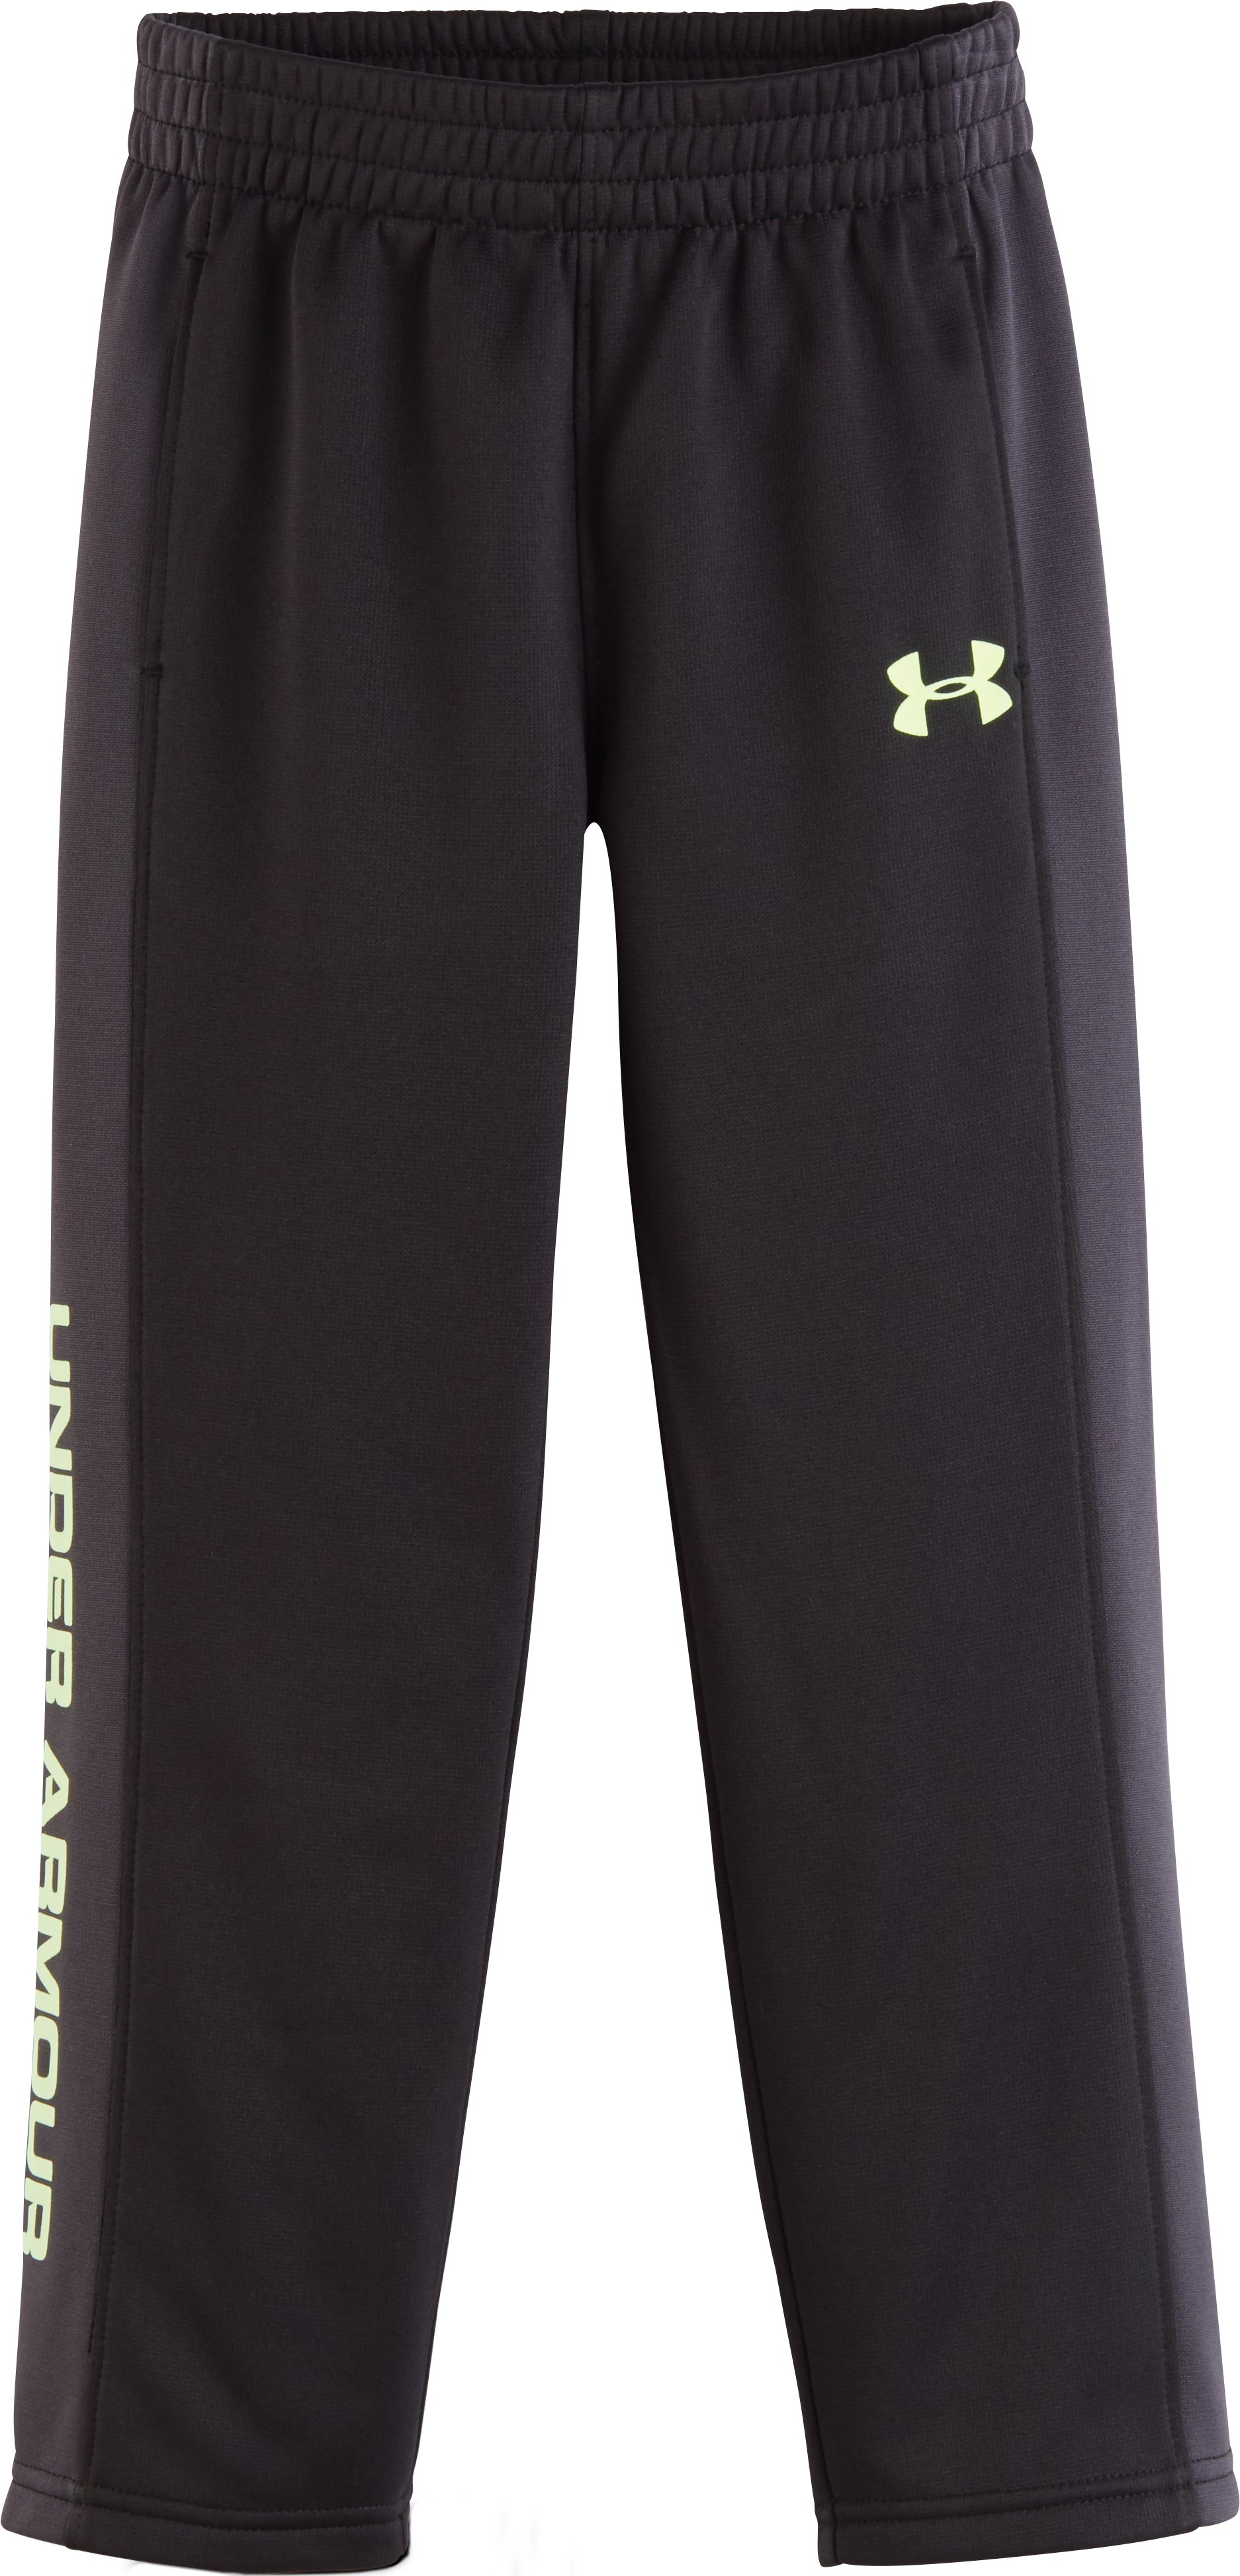 Boys' Pre-School UA Stampede Pants, Black , zoomed image